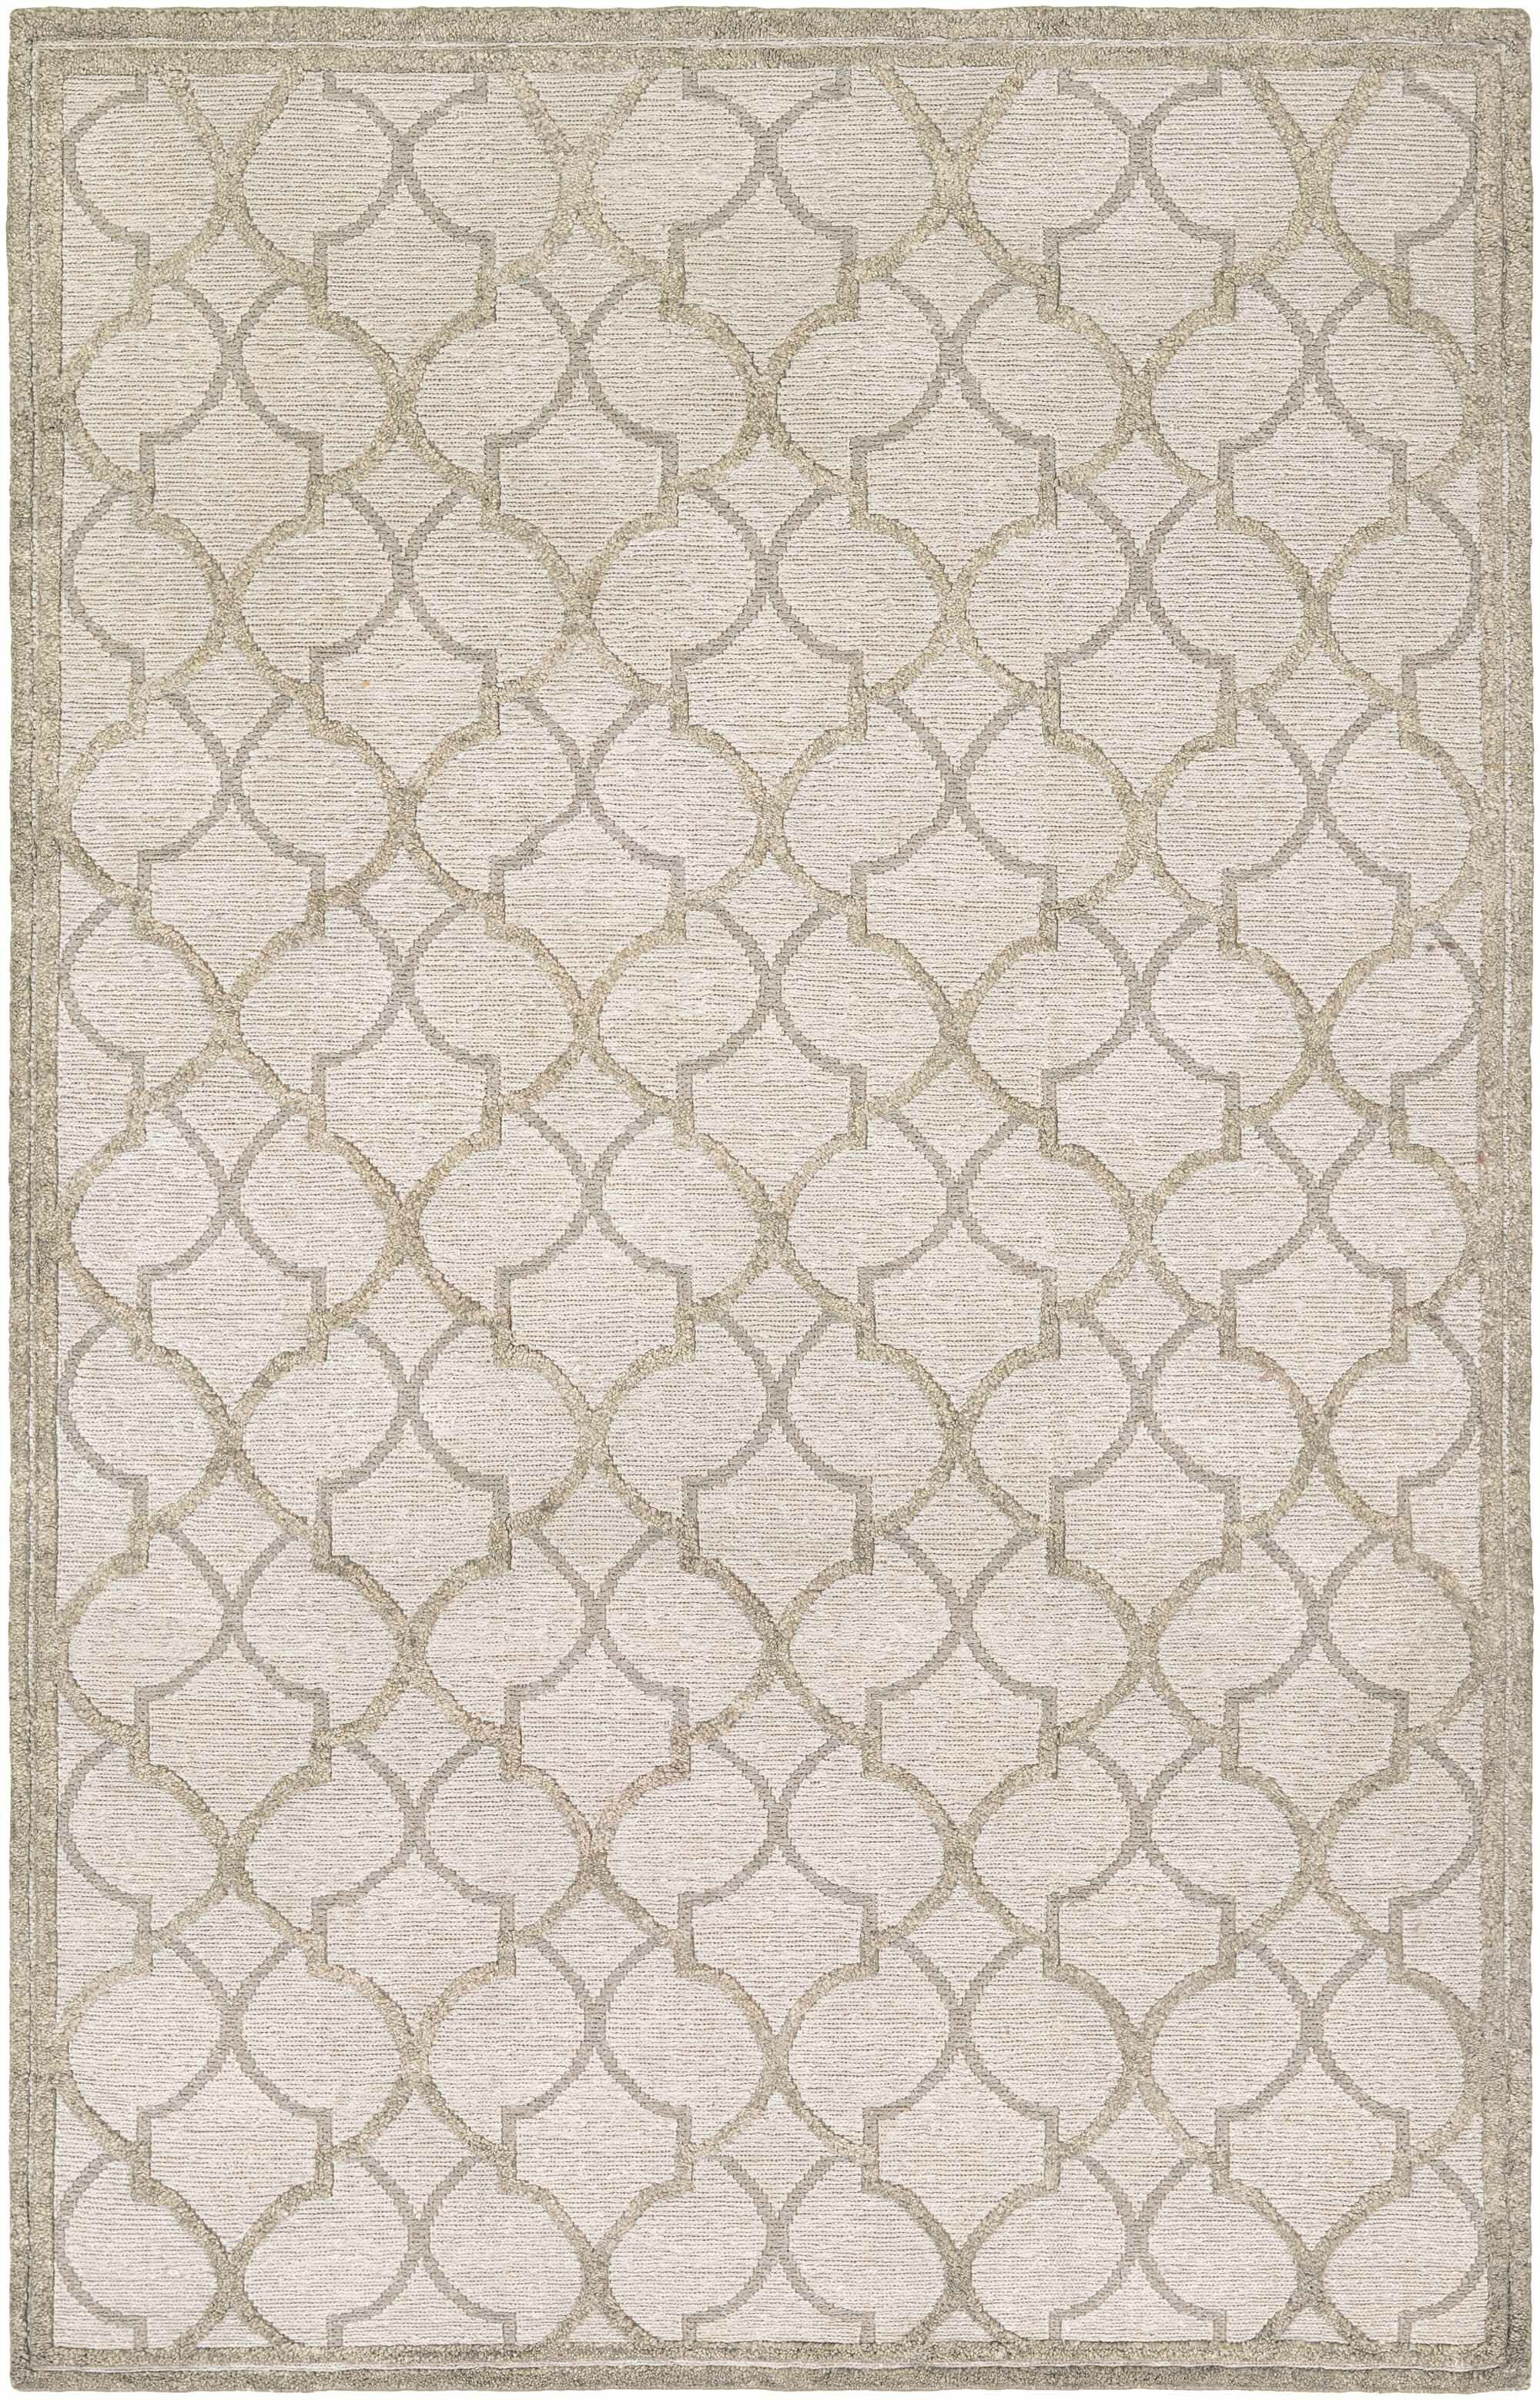 Willisville Hand-Woven Gray/Silver Area Rug Rug Size: Rectangle 3'6